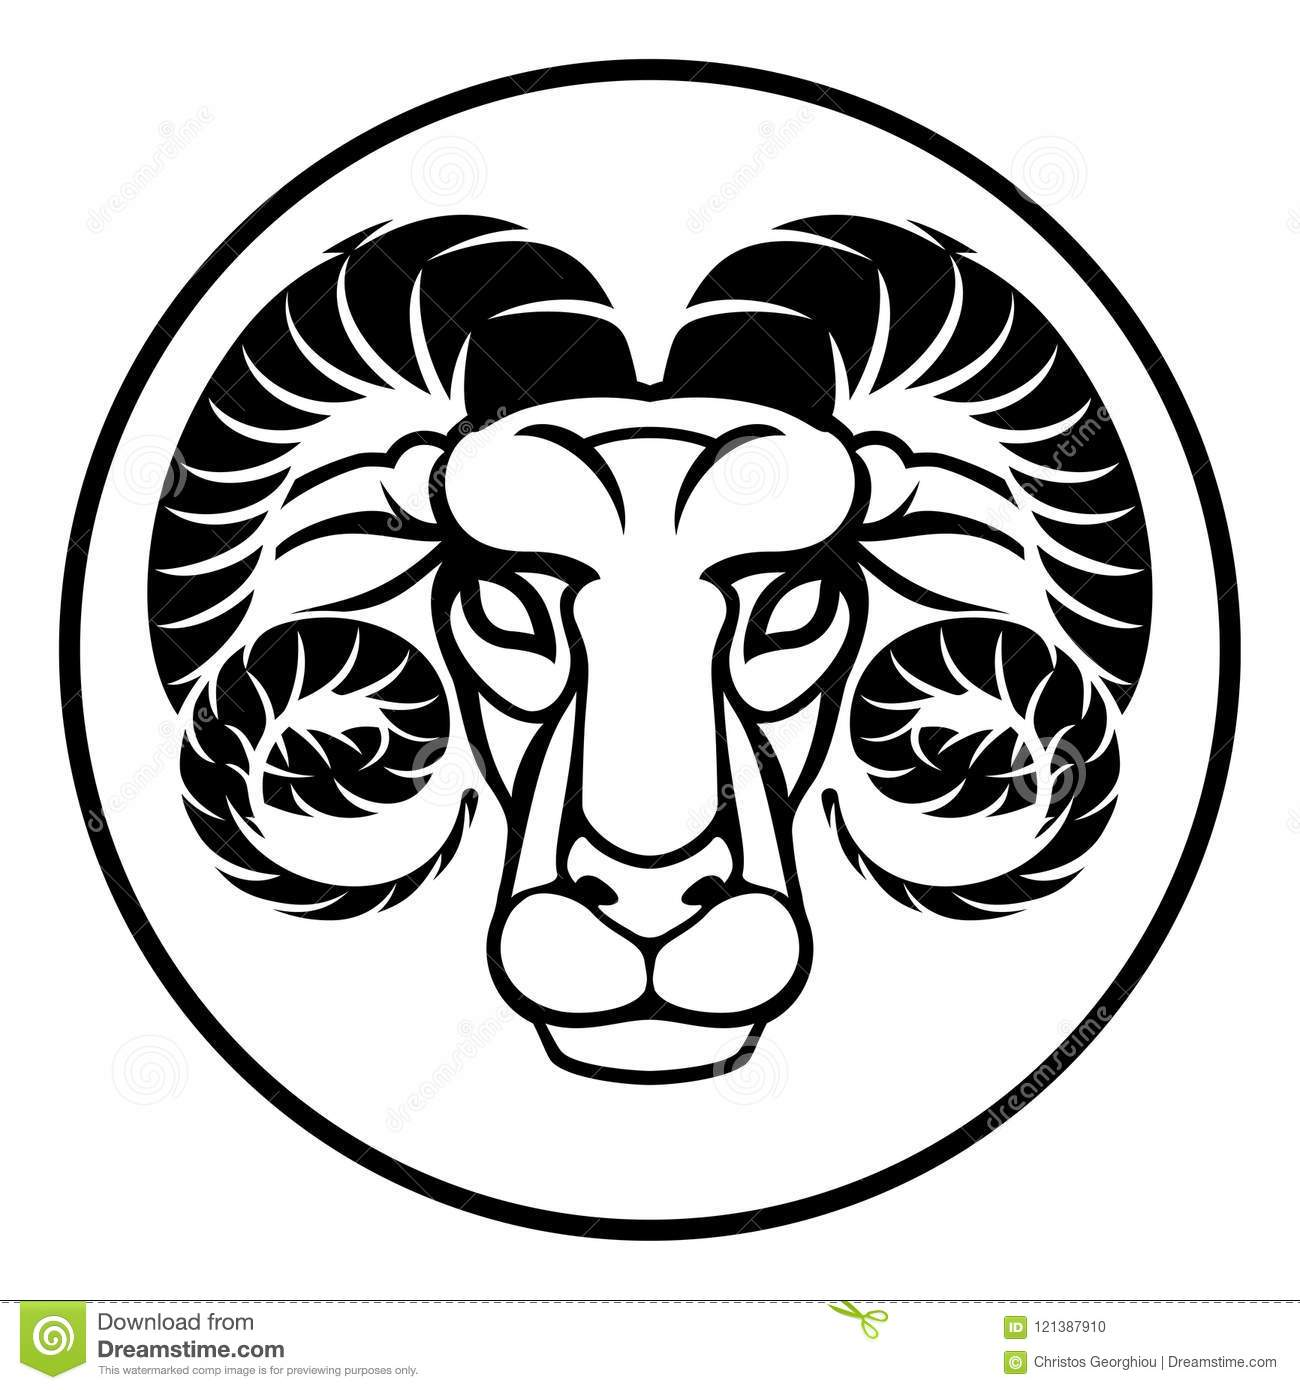 Aries Zodiac Sign Stock Vector Illustration Of Graphic 121387910